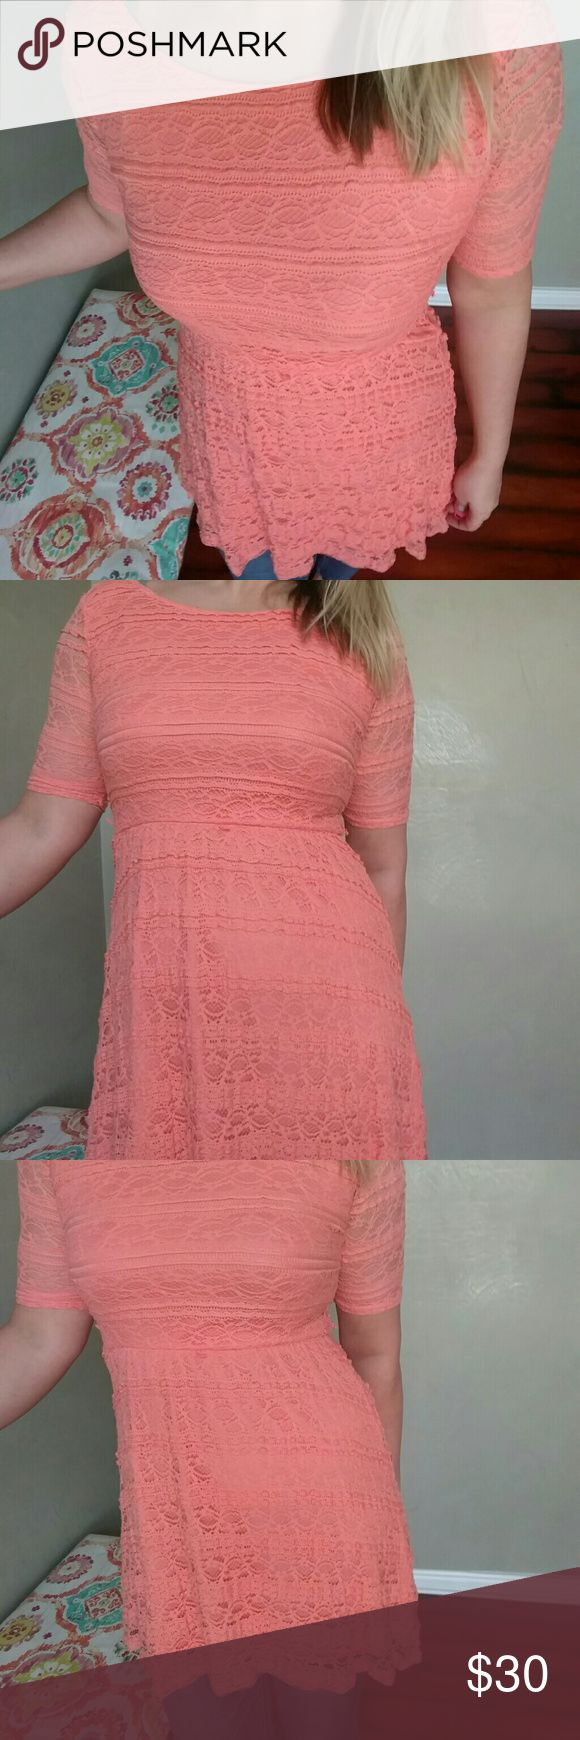 TODAY ONLY!! Coral Lace Dress Coral, lace, great condition. Missing belt. Dresses Mini